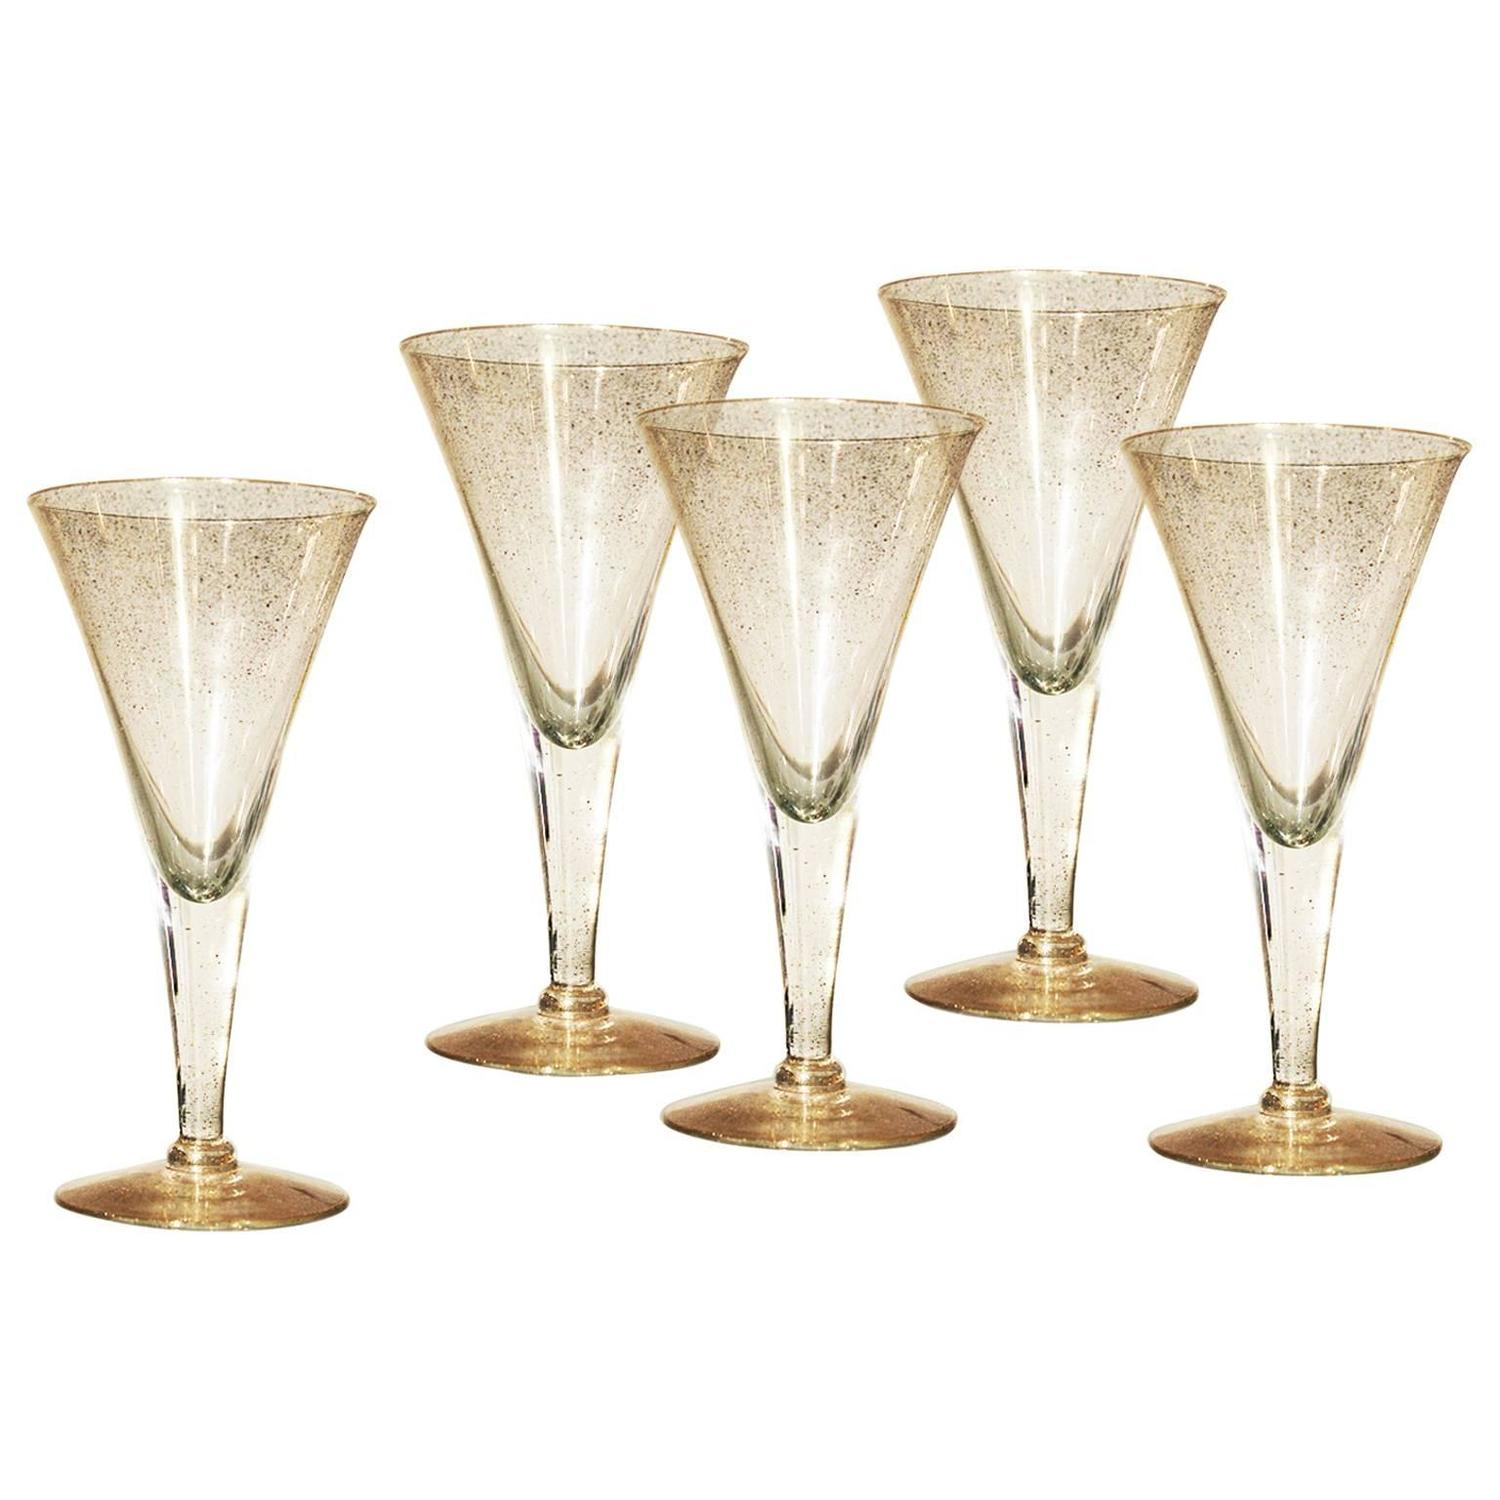 Dorothy c thorpe gold fleck small champagne flutes or wine glasses for sale - Petite flute a champagne ...